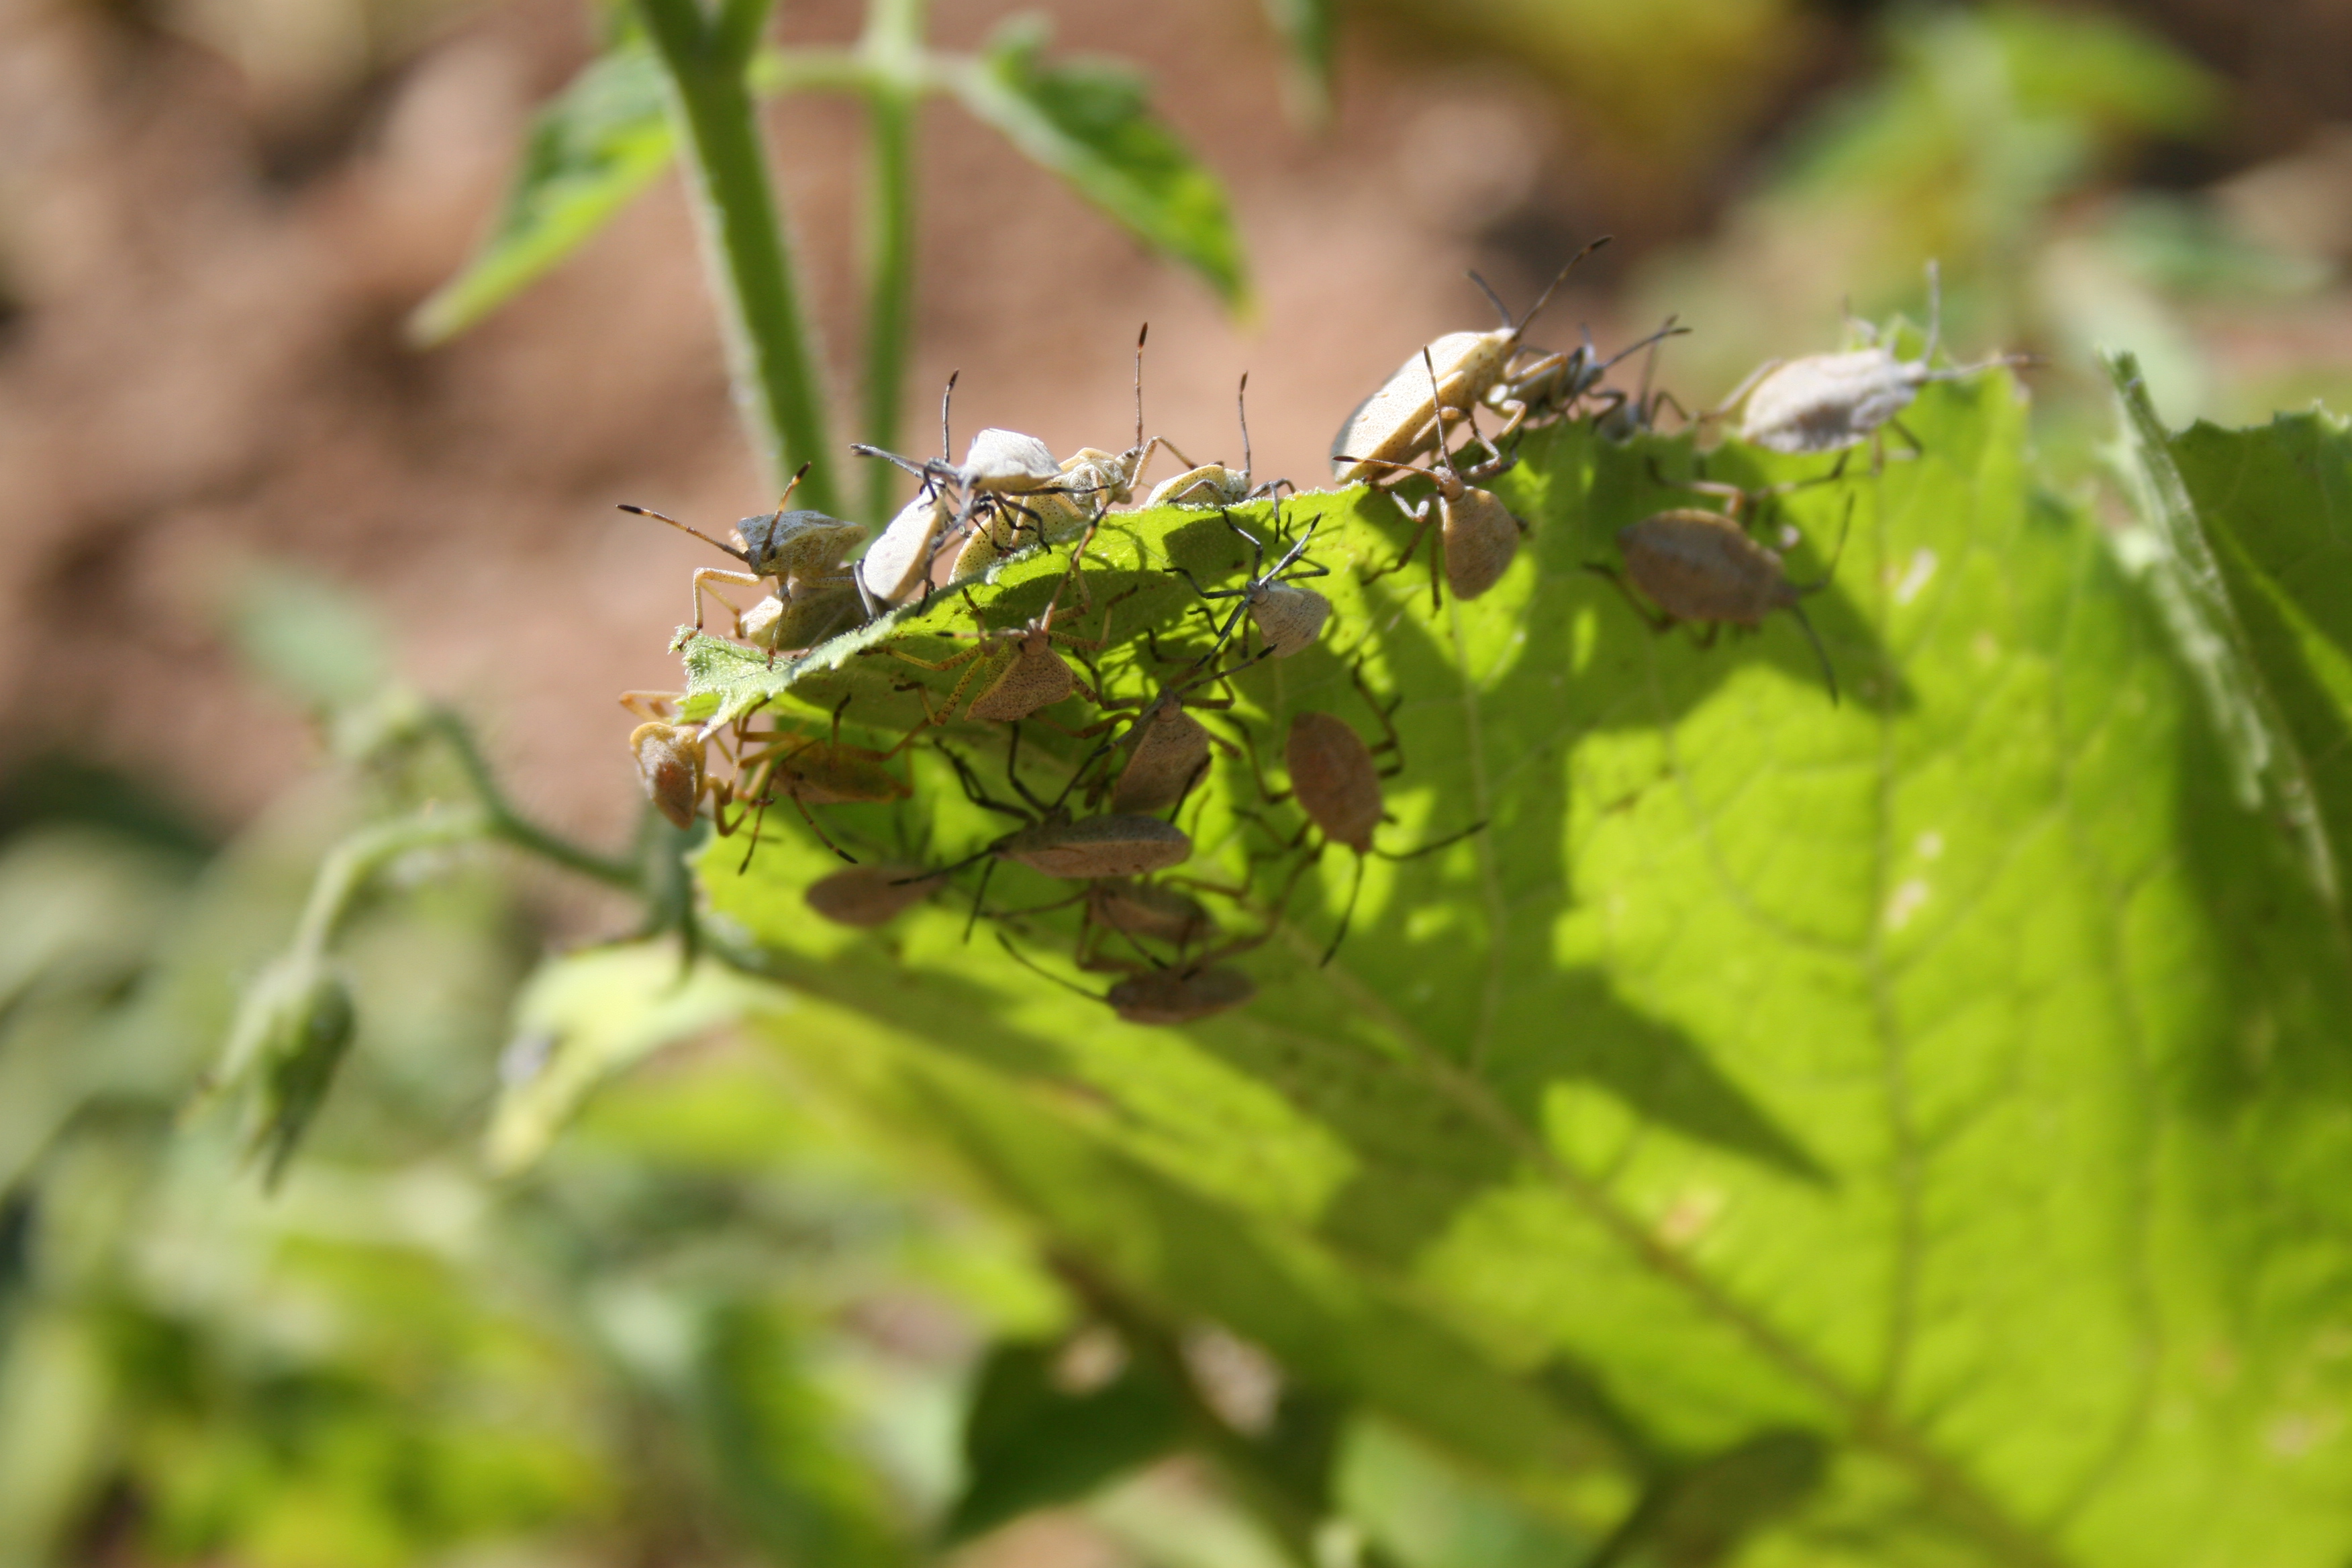 Immature squash bugs feast on the leaf of a yellow squash plant